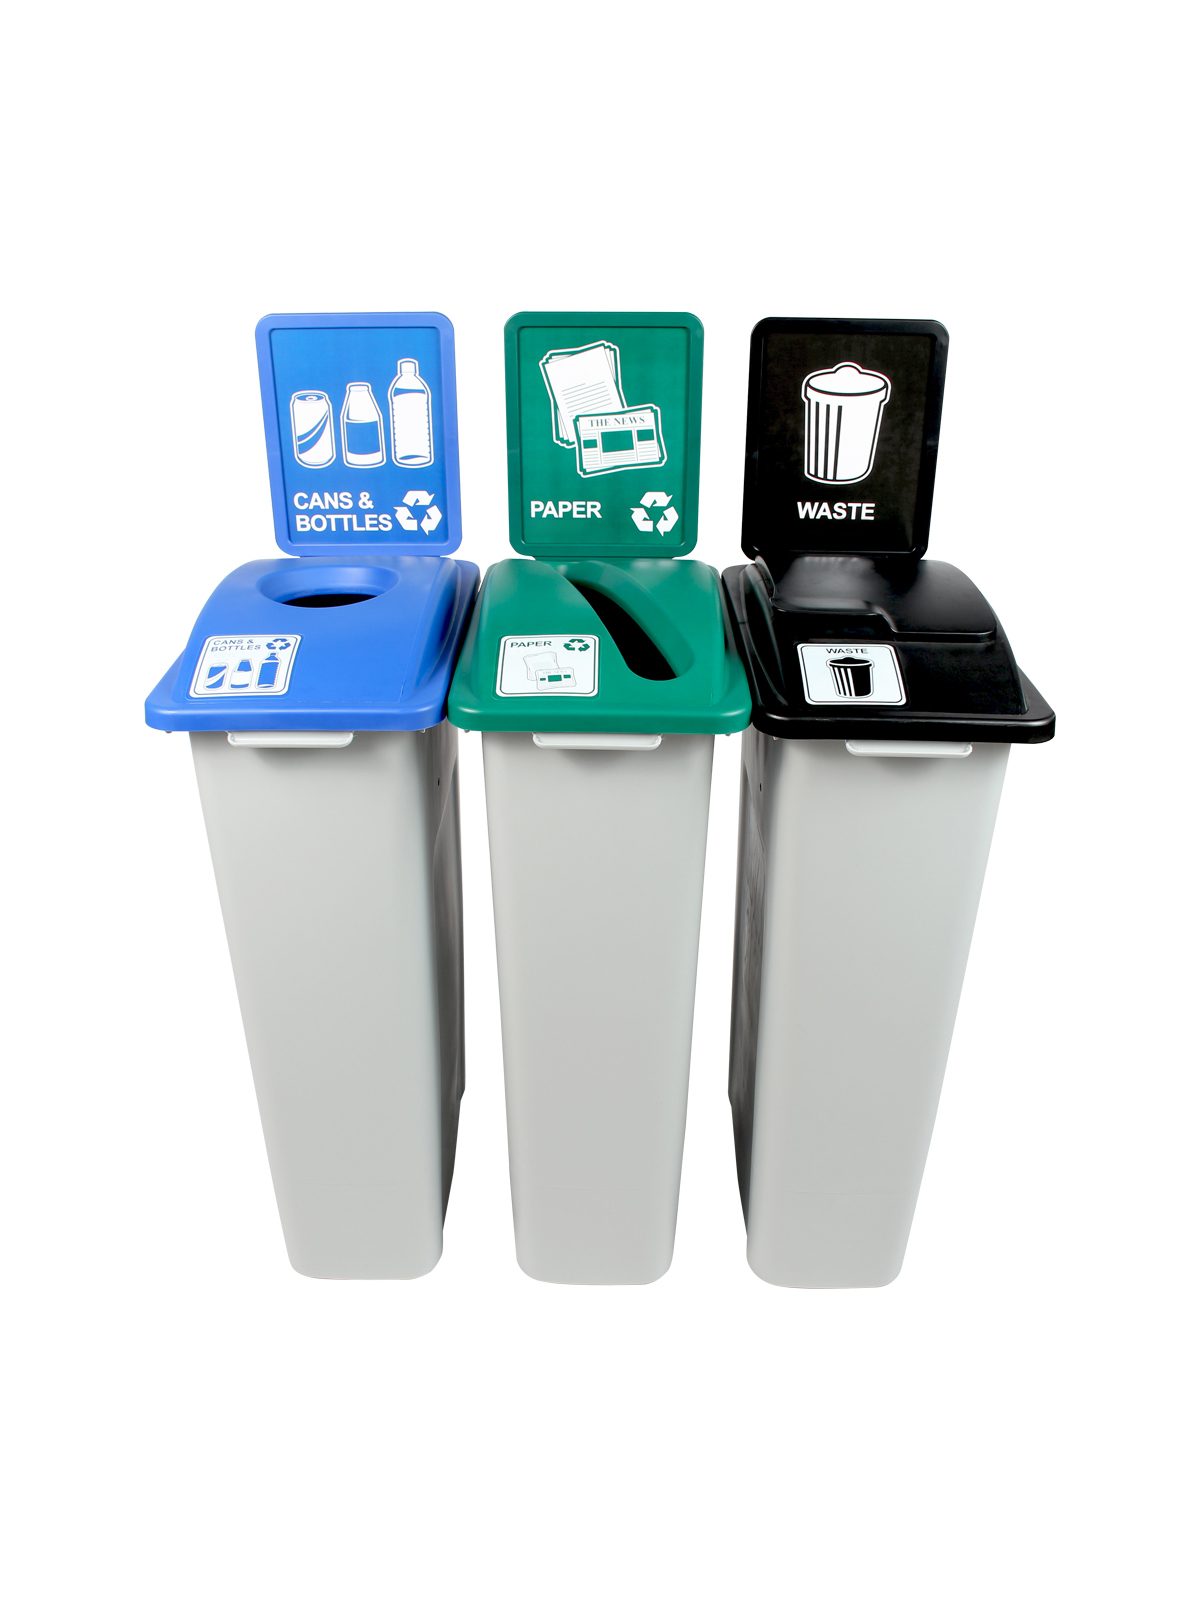 WASTE WATCHER - Triple - Cans & Bottles-Paper-Waste - Circle-Slot-Solid Lift - Grey-Blue-Green-Black